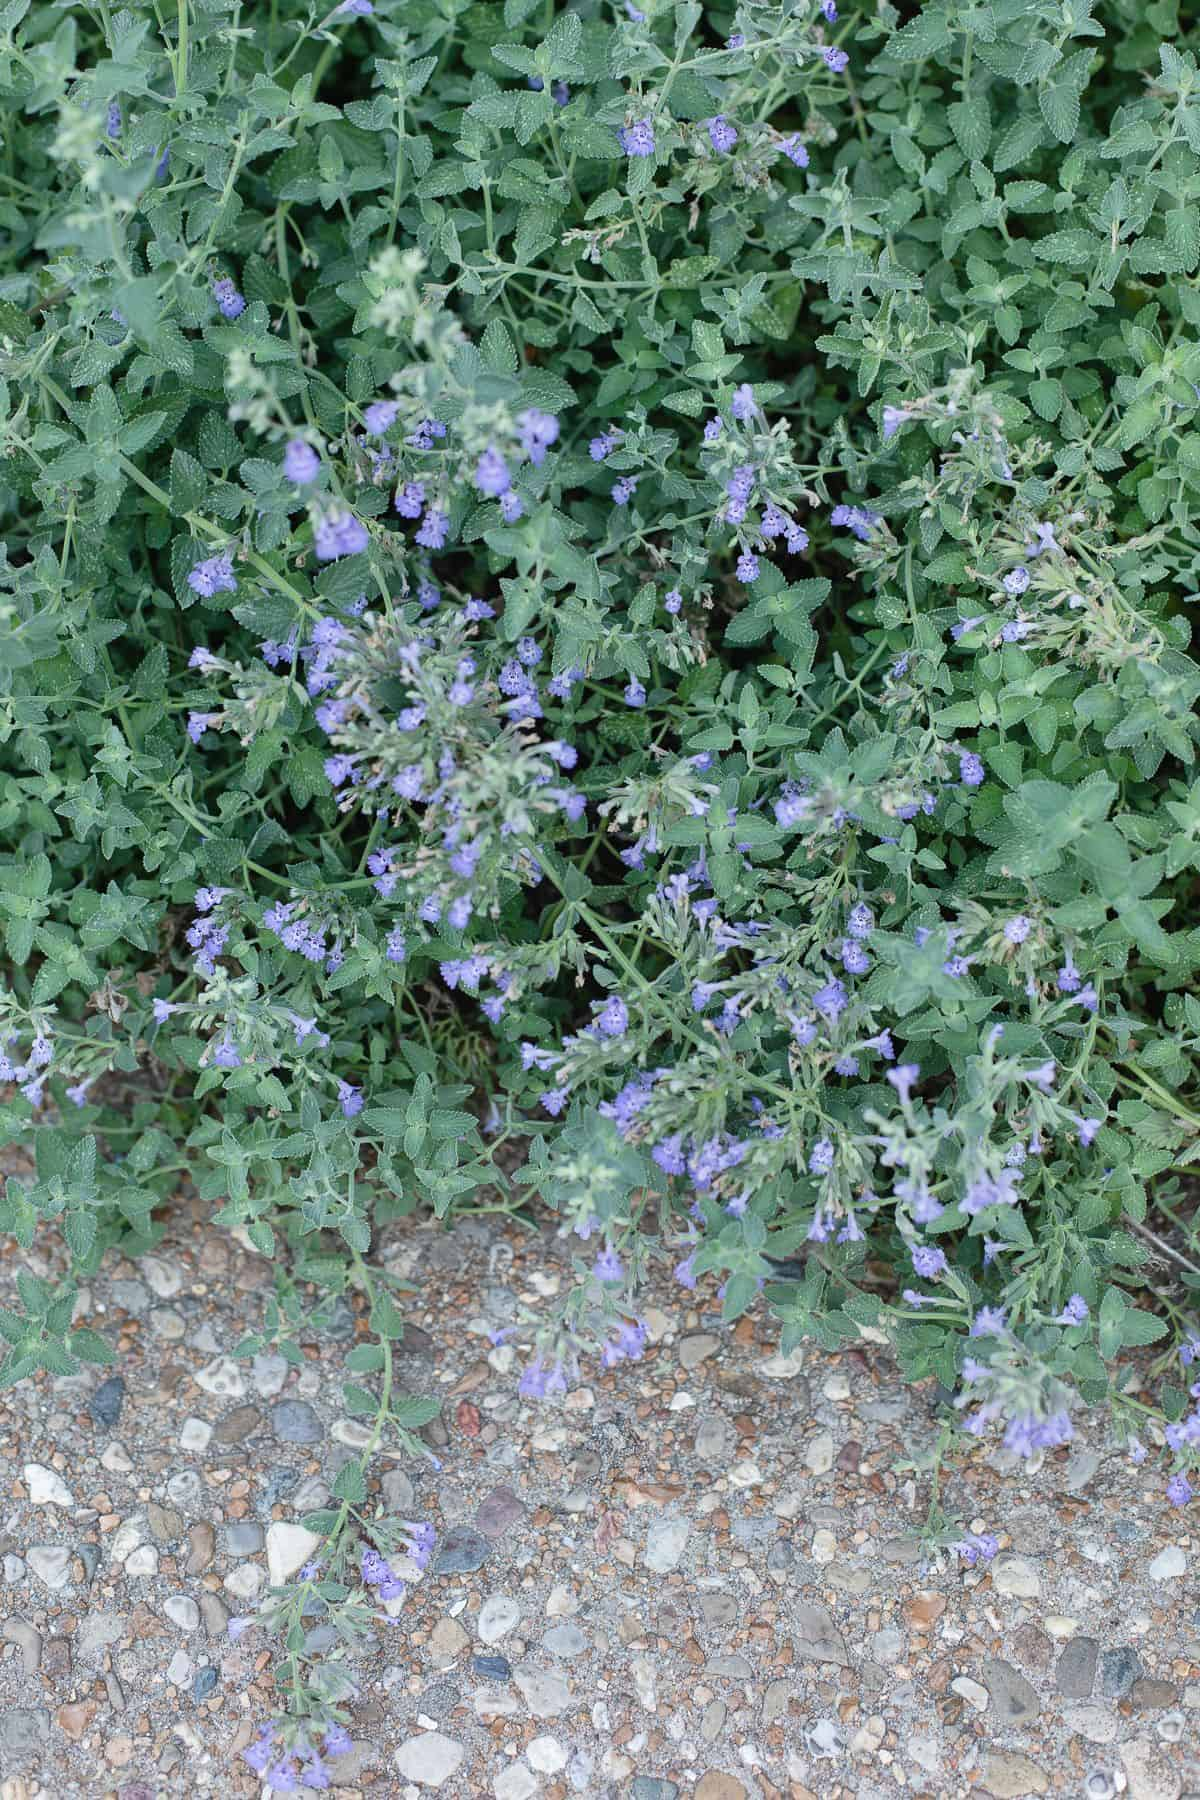 A bush of catmint next to a pebbled sidewalk.